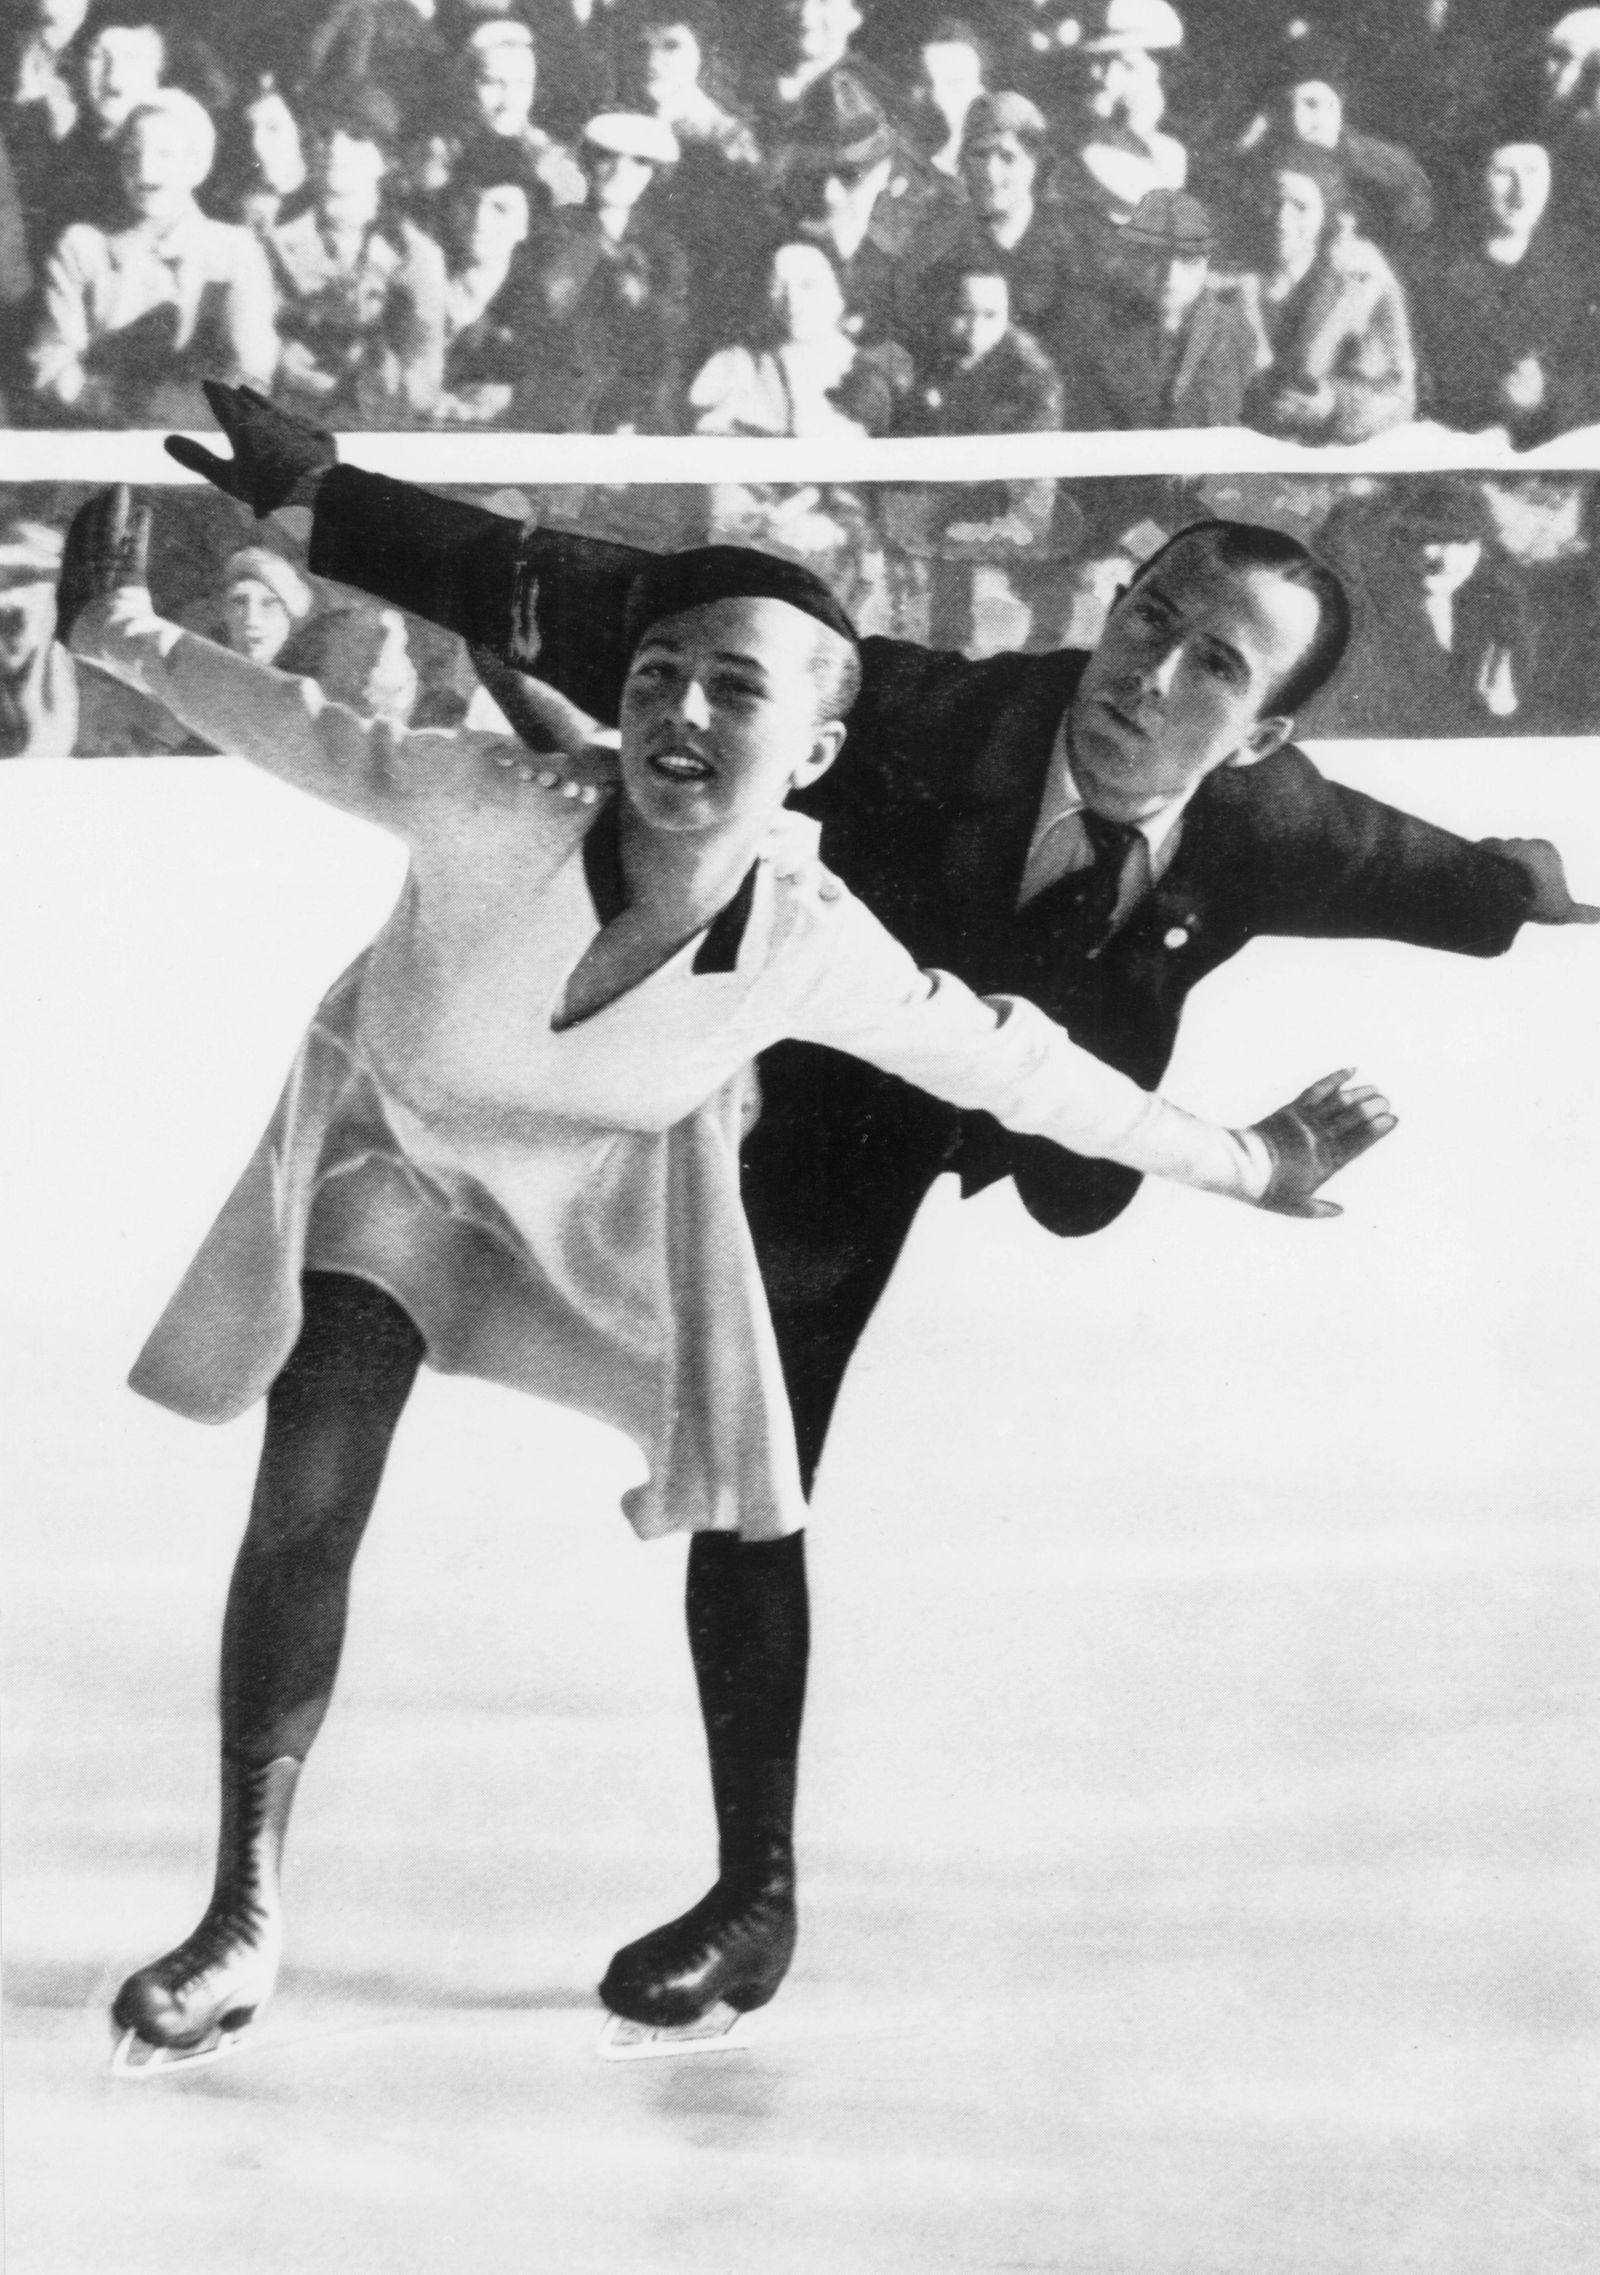 1936 Winter Olympics - Garmisch and Partenkirchen in Bavaria, Germany. Maxie Haible and Ernst Baier who won the gold me